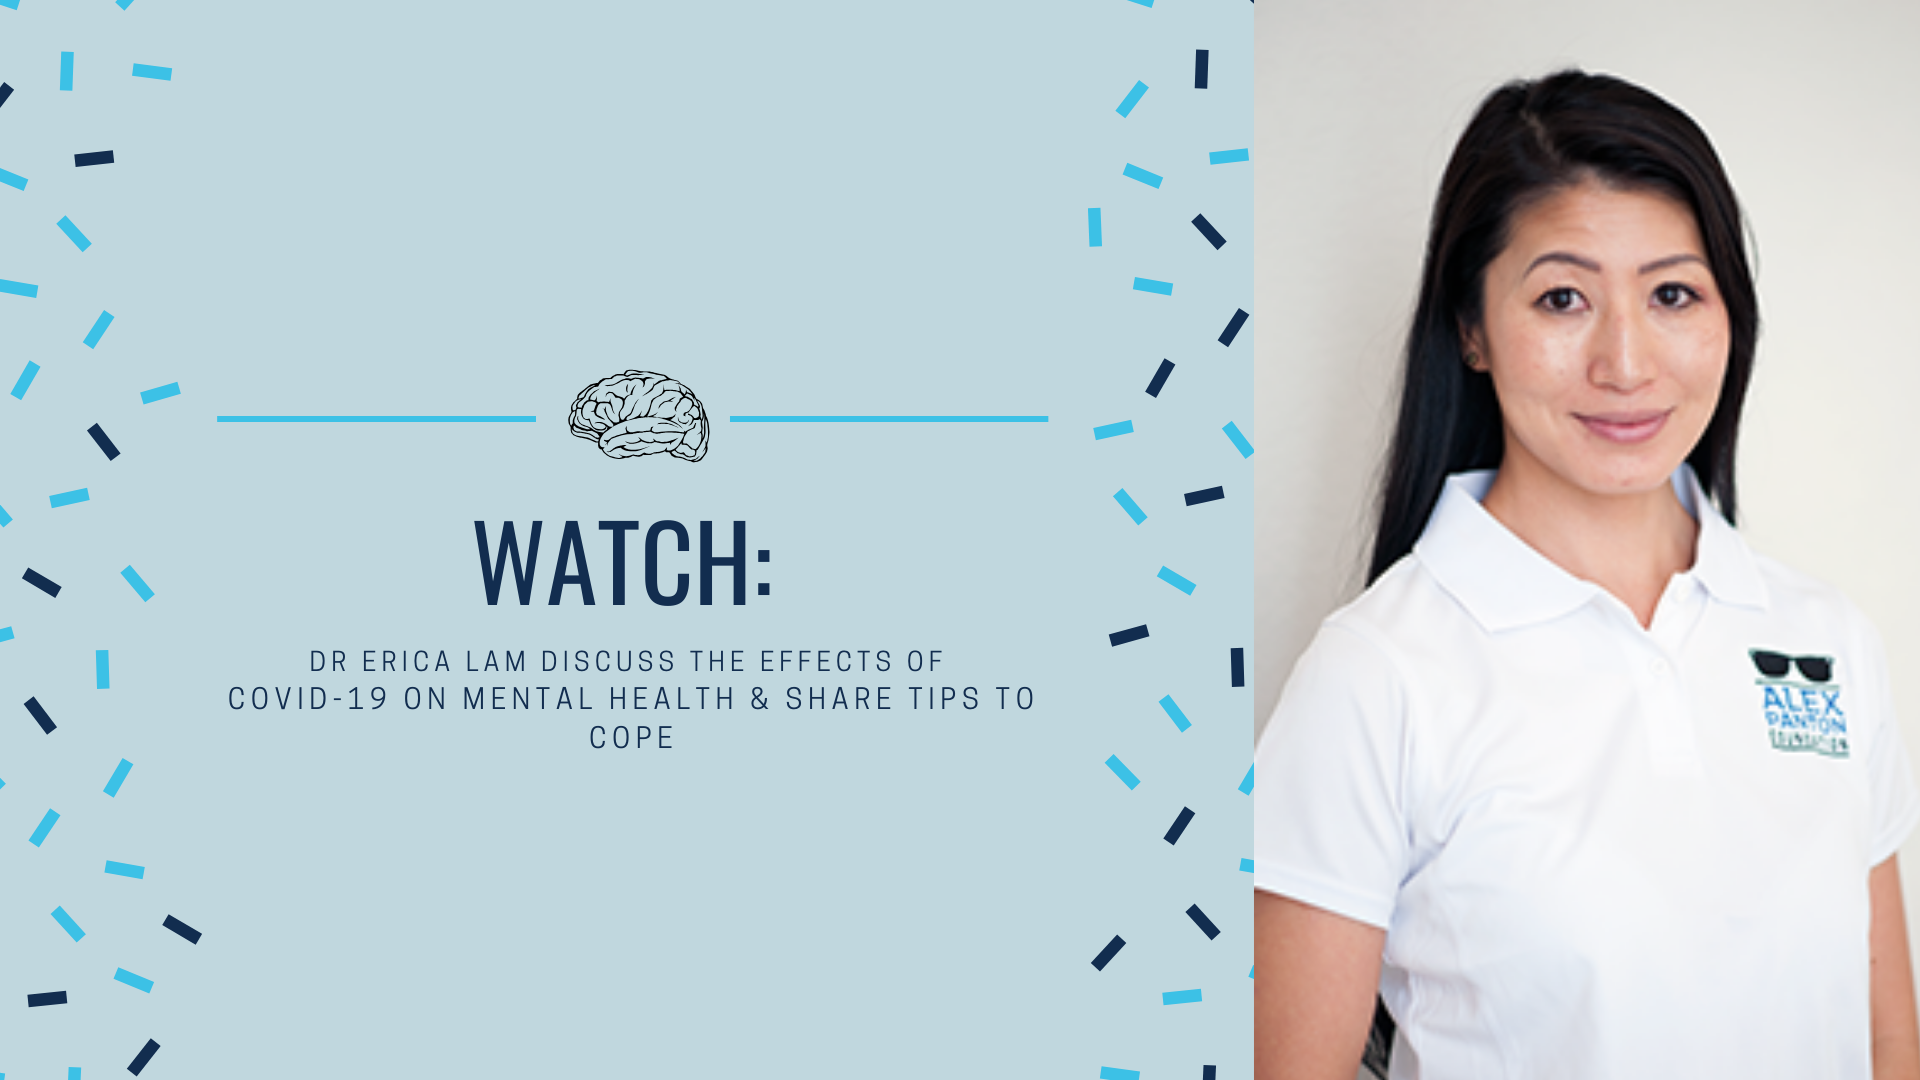 WATCH: Dr Erica Lam discuss the effects of  COVID-19 on mental health & share tips to cope